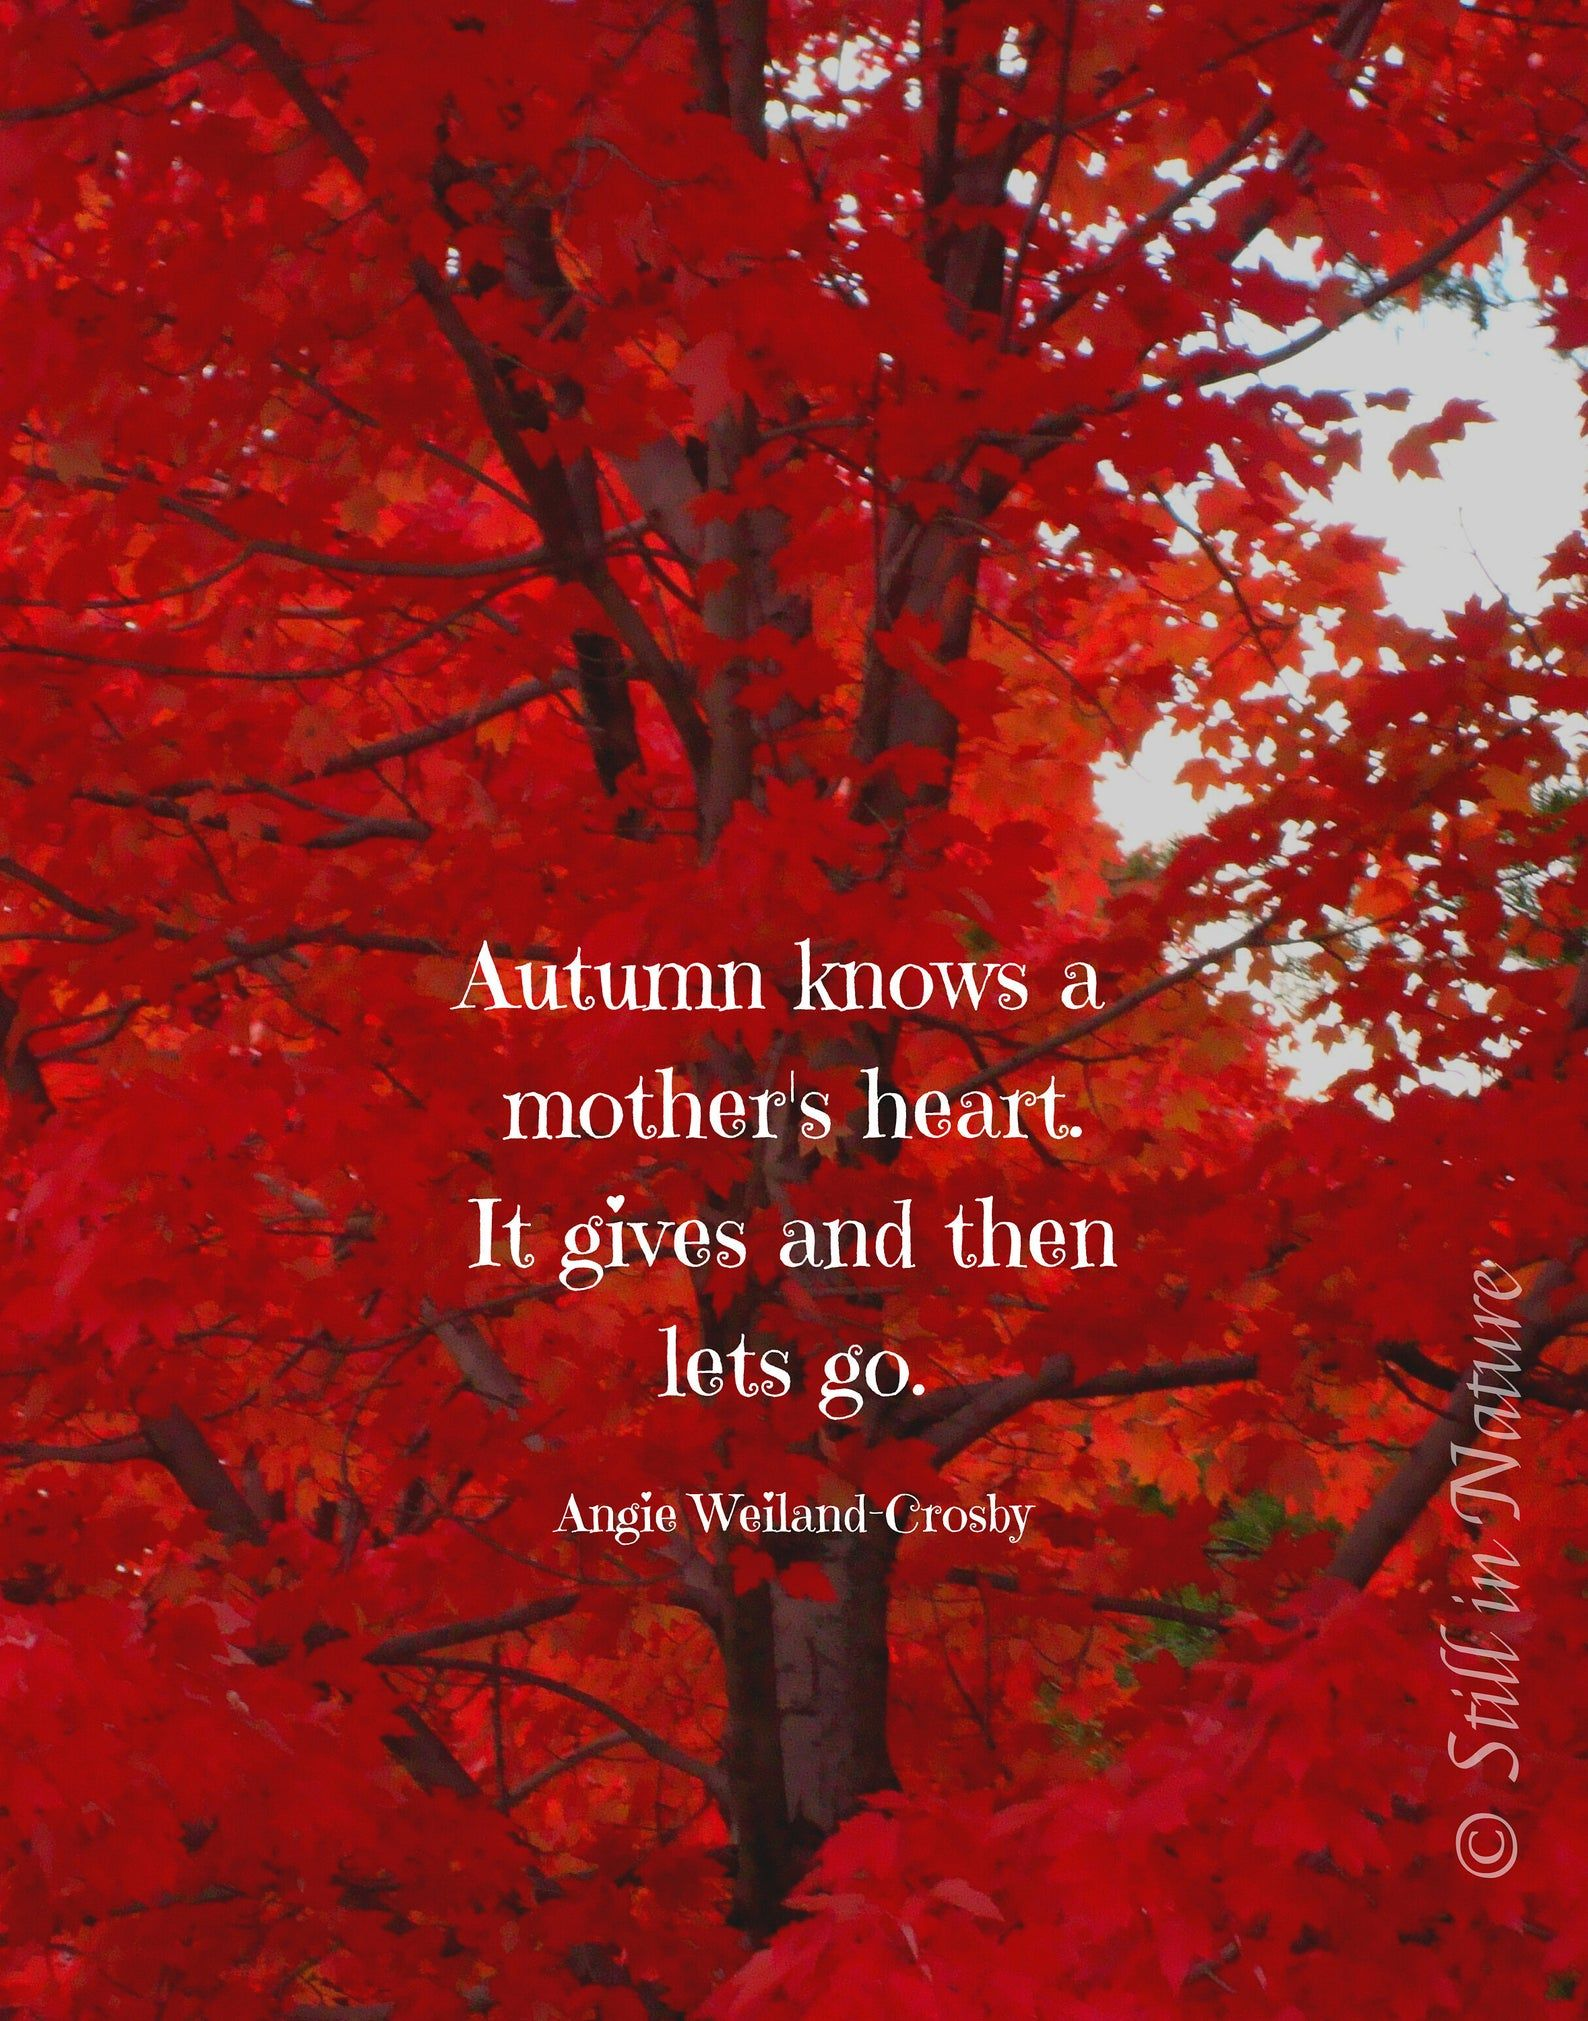 Angie Weiland Crosby Quote Autumn S Mother Heart Gift For Moms Nature Quote Art Print Quote Wall Decor Instant Download Nature Quotes Beautiful Photography Nature Autumn Quotes